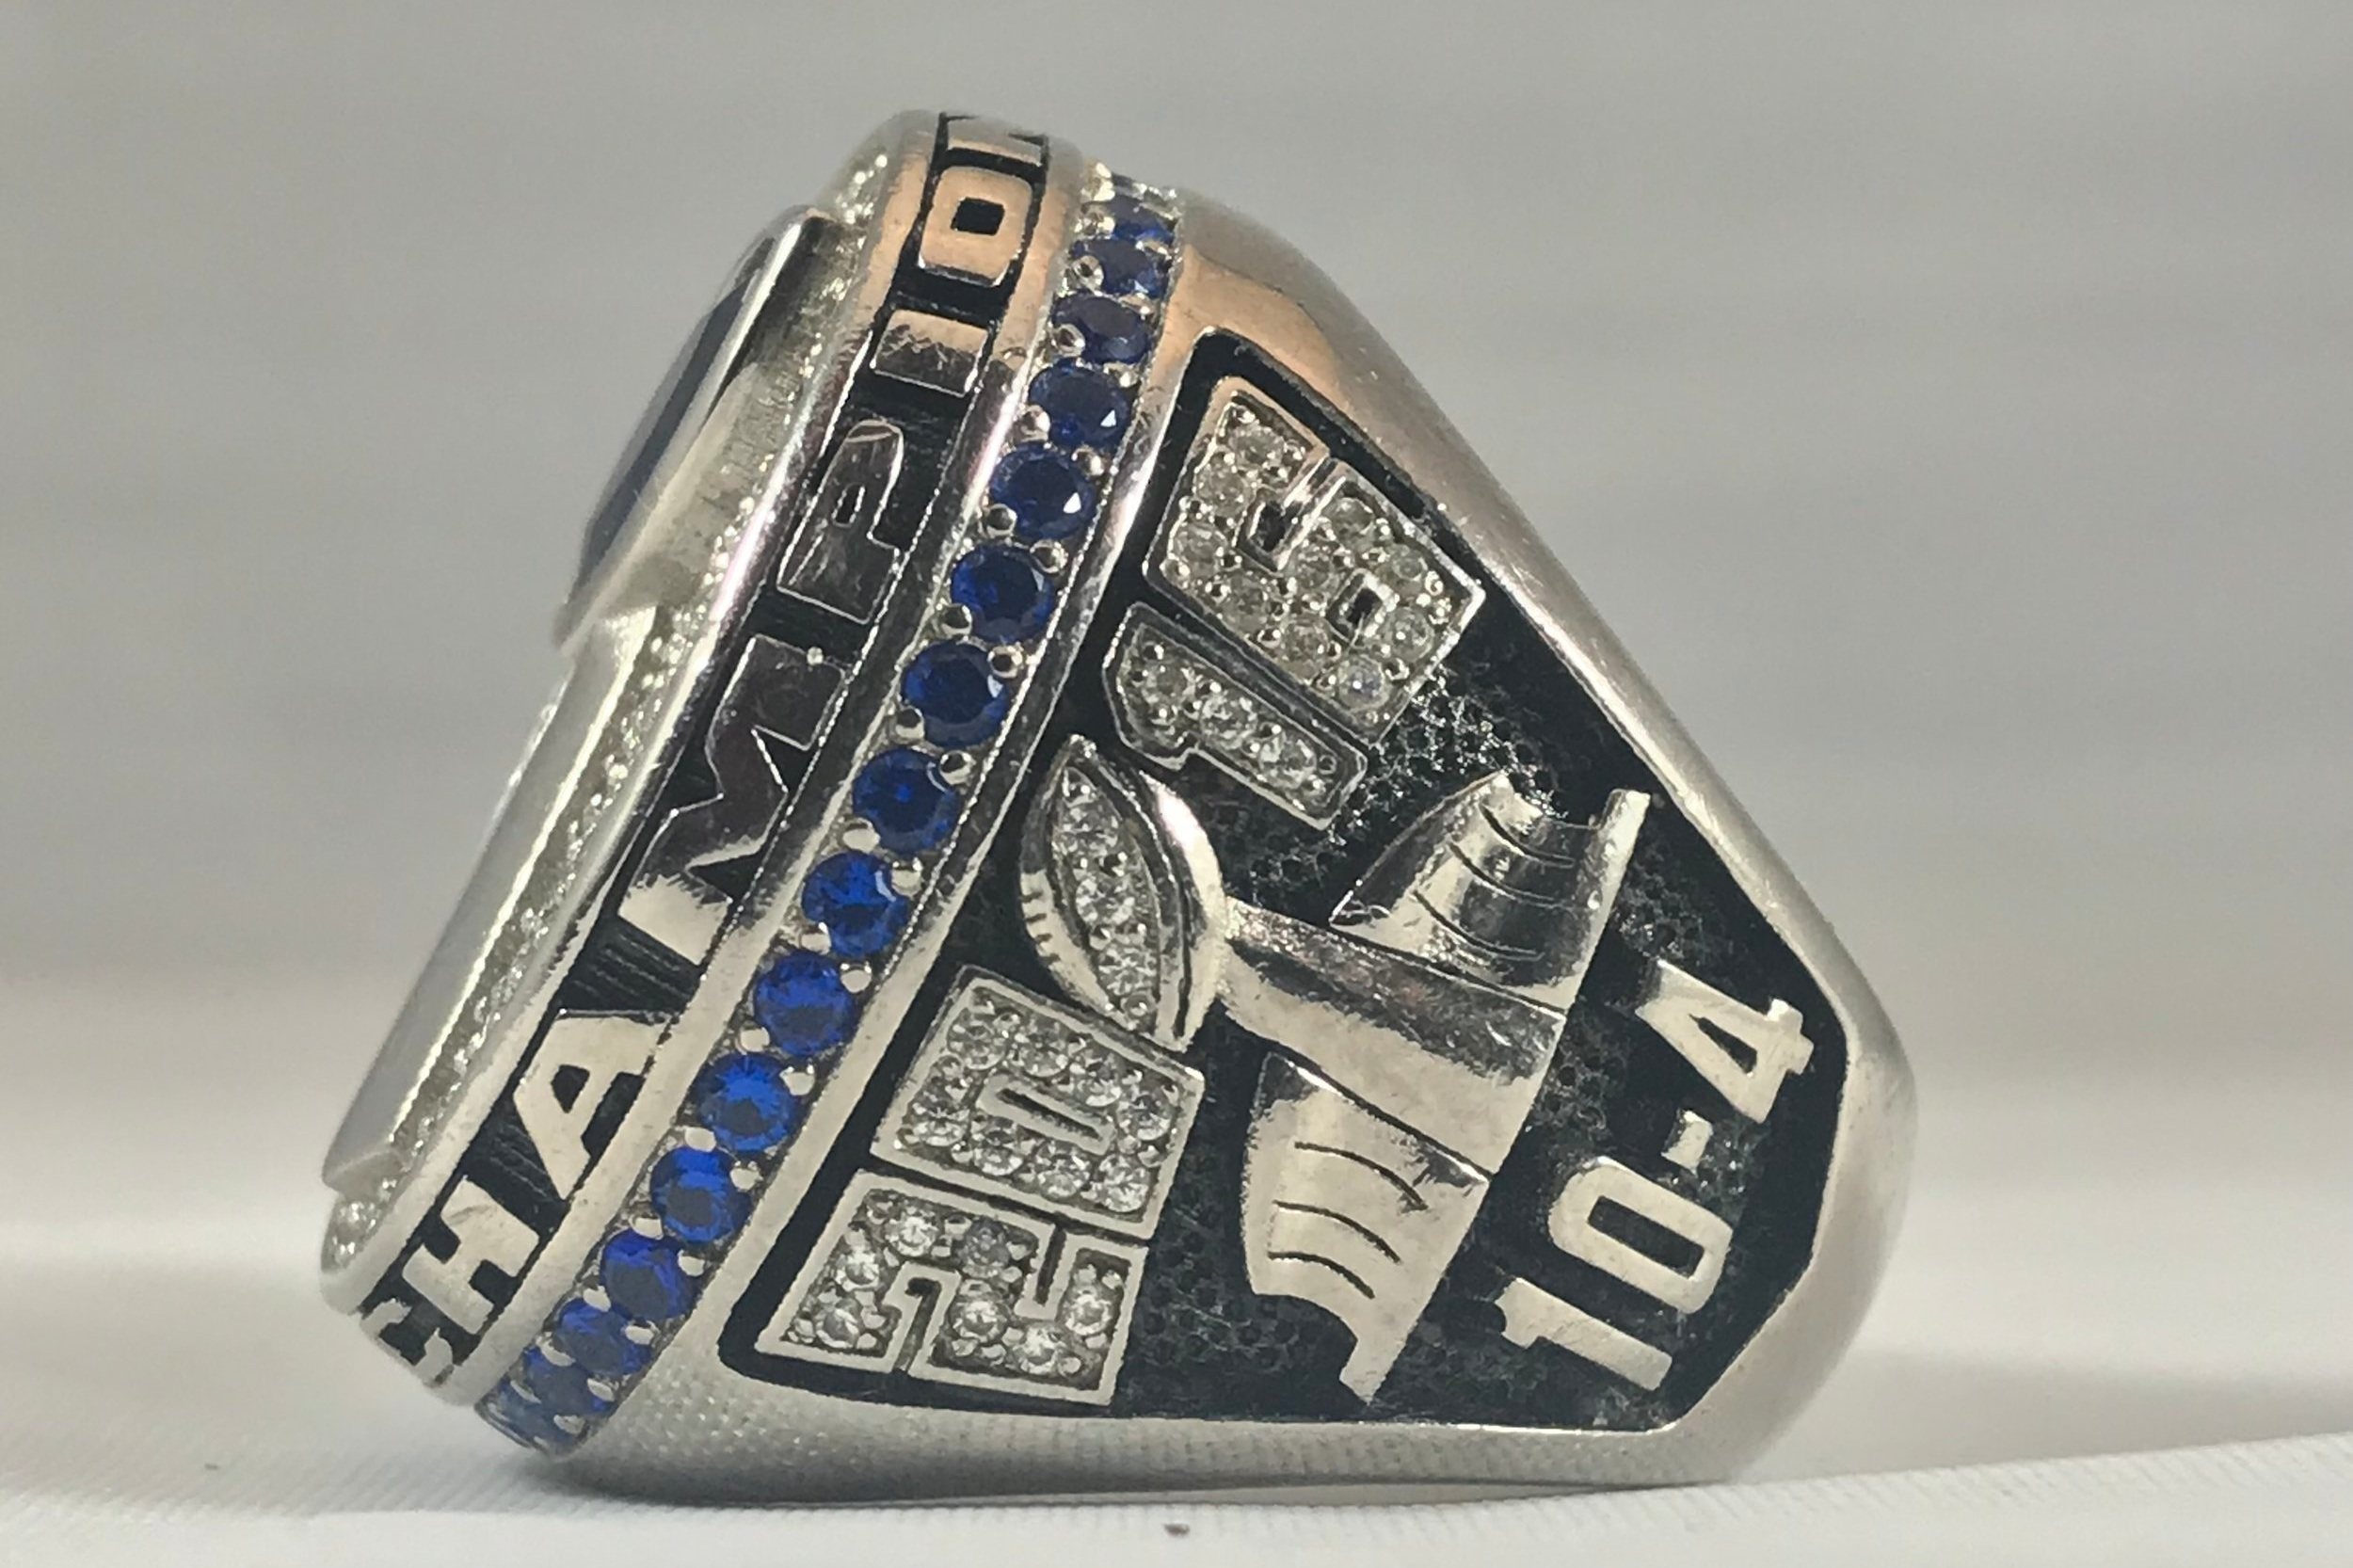 Show off your Season Record - Whether you went undefeated or had a losing record you still came home with a championship and thats all that matters. If you don't want your record this can be another place to add up to 4 characters.*FAQ - Yes you can have ties on your ring (ie. 12-1-1), but only with v1 designs.